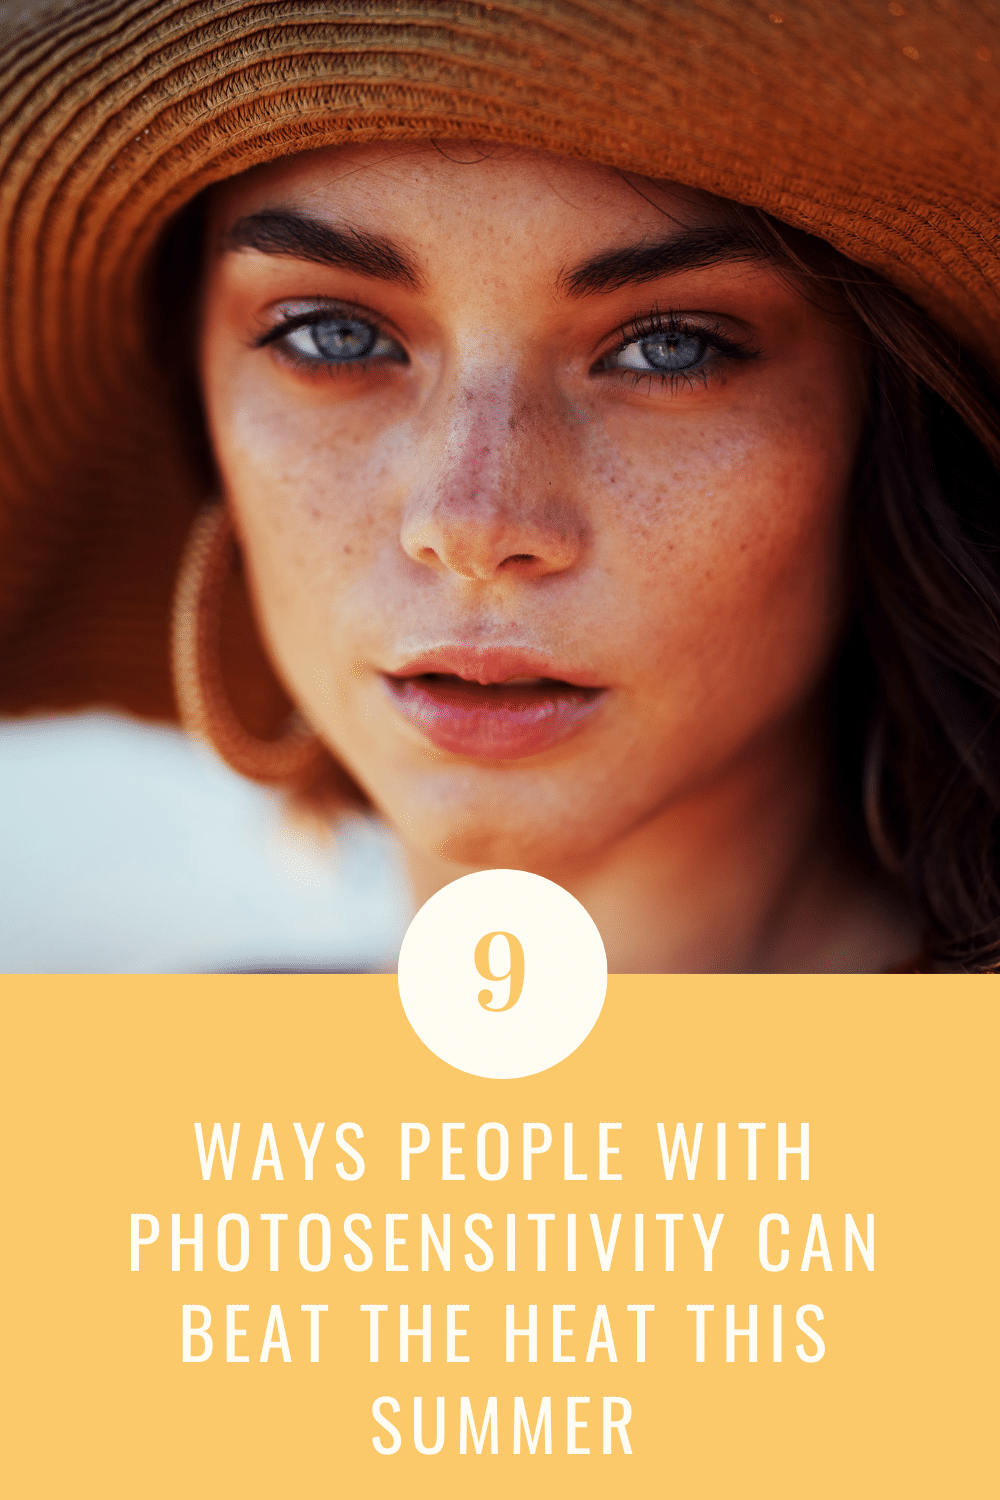 Photosensitivity tips for coping with heat and sun allergy.